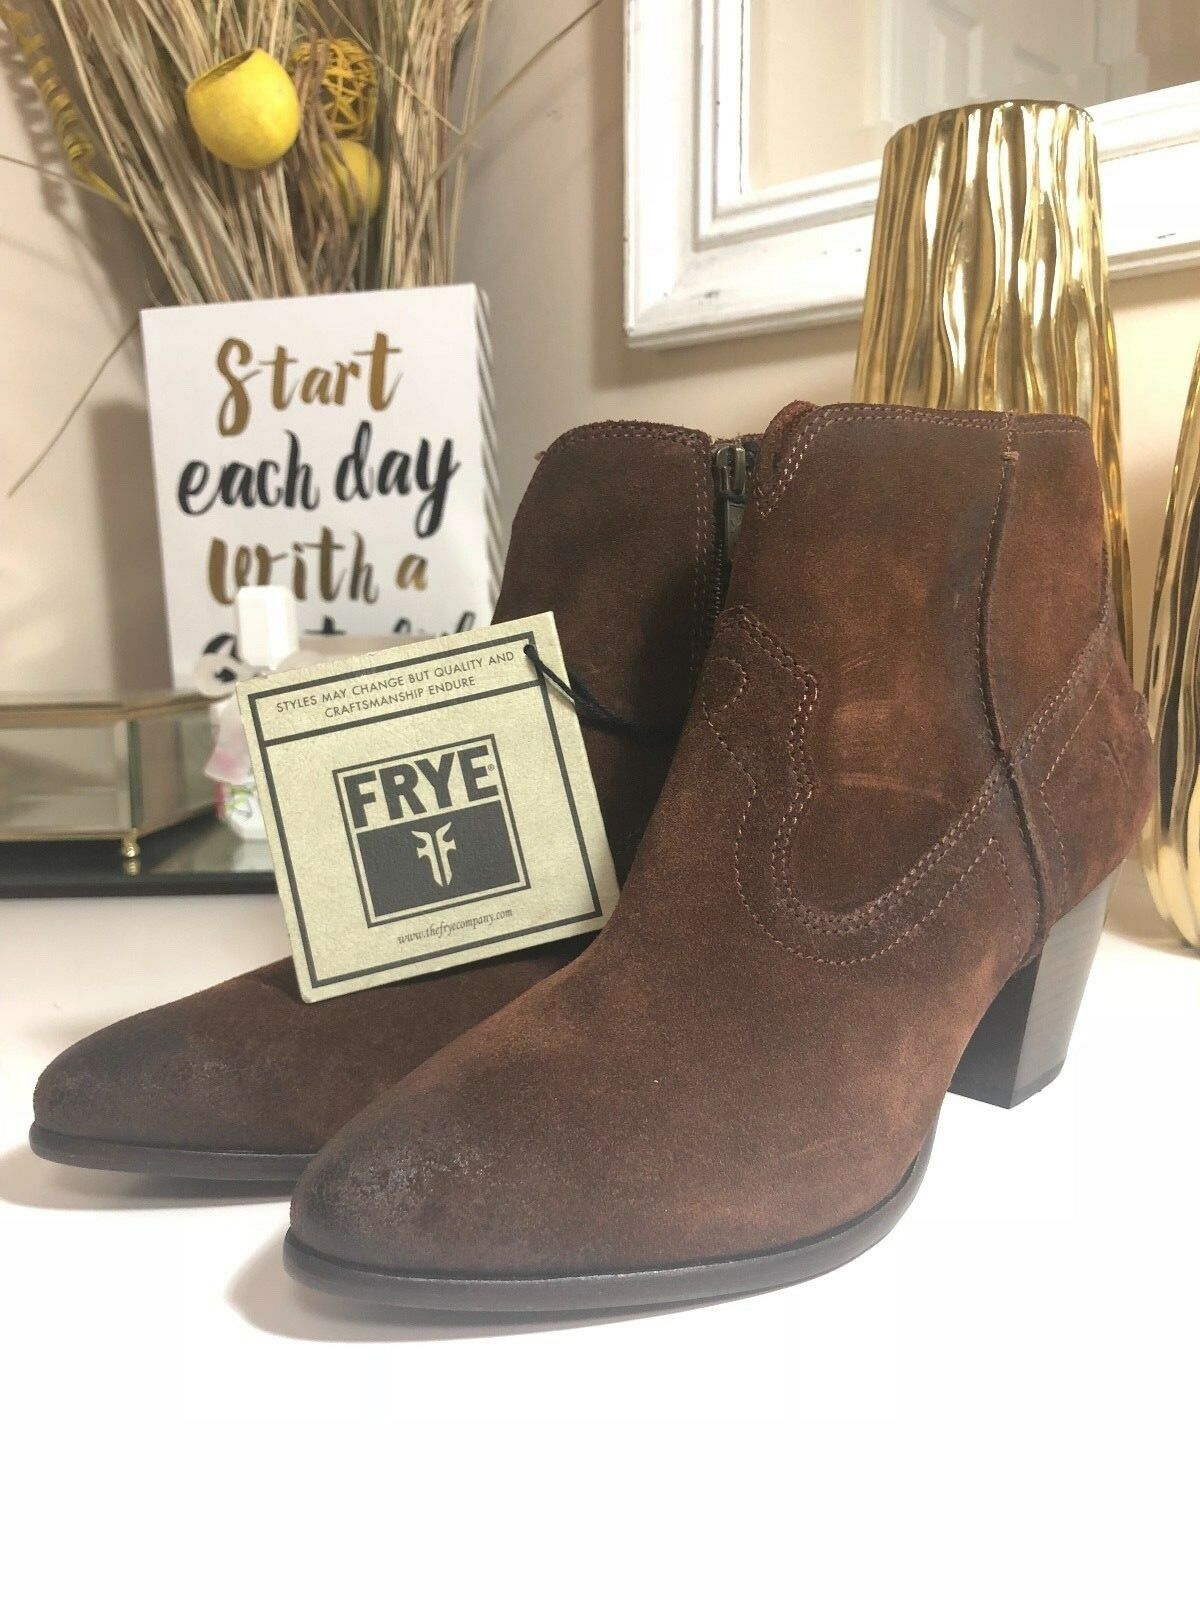 NWOB Women's FRYE Renee Seam Short Boots, Brown, Sz 9M